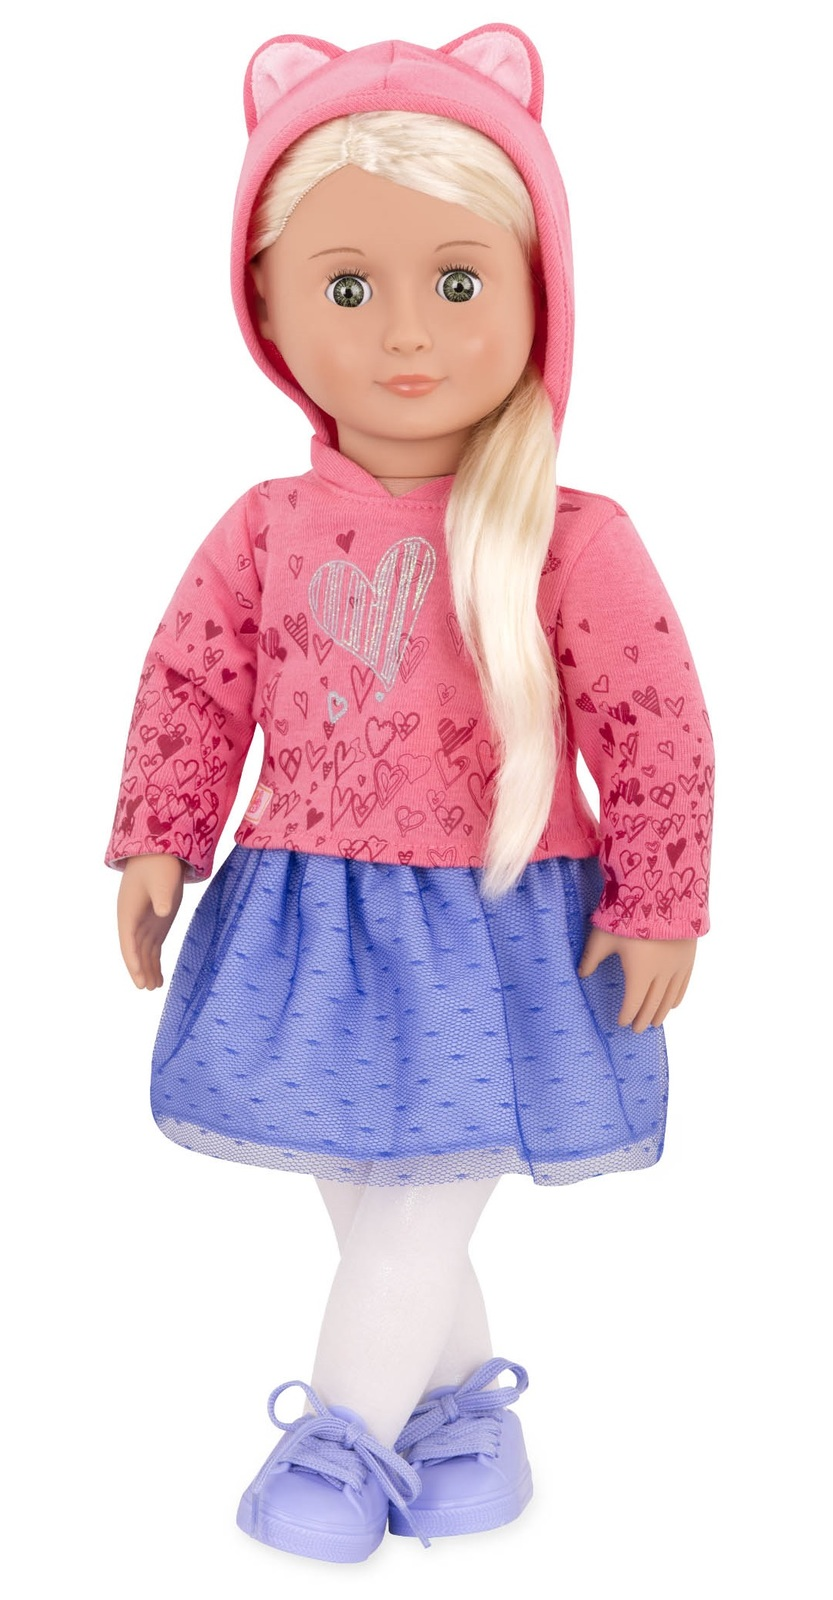 "Our Generation: 18"" Regular Doll - Guacyra image"